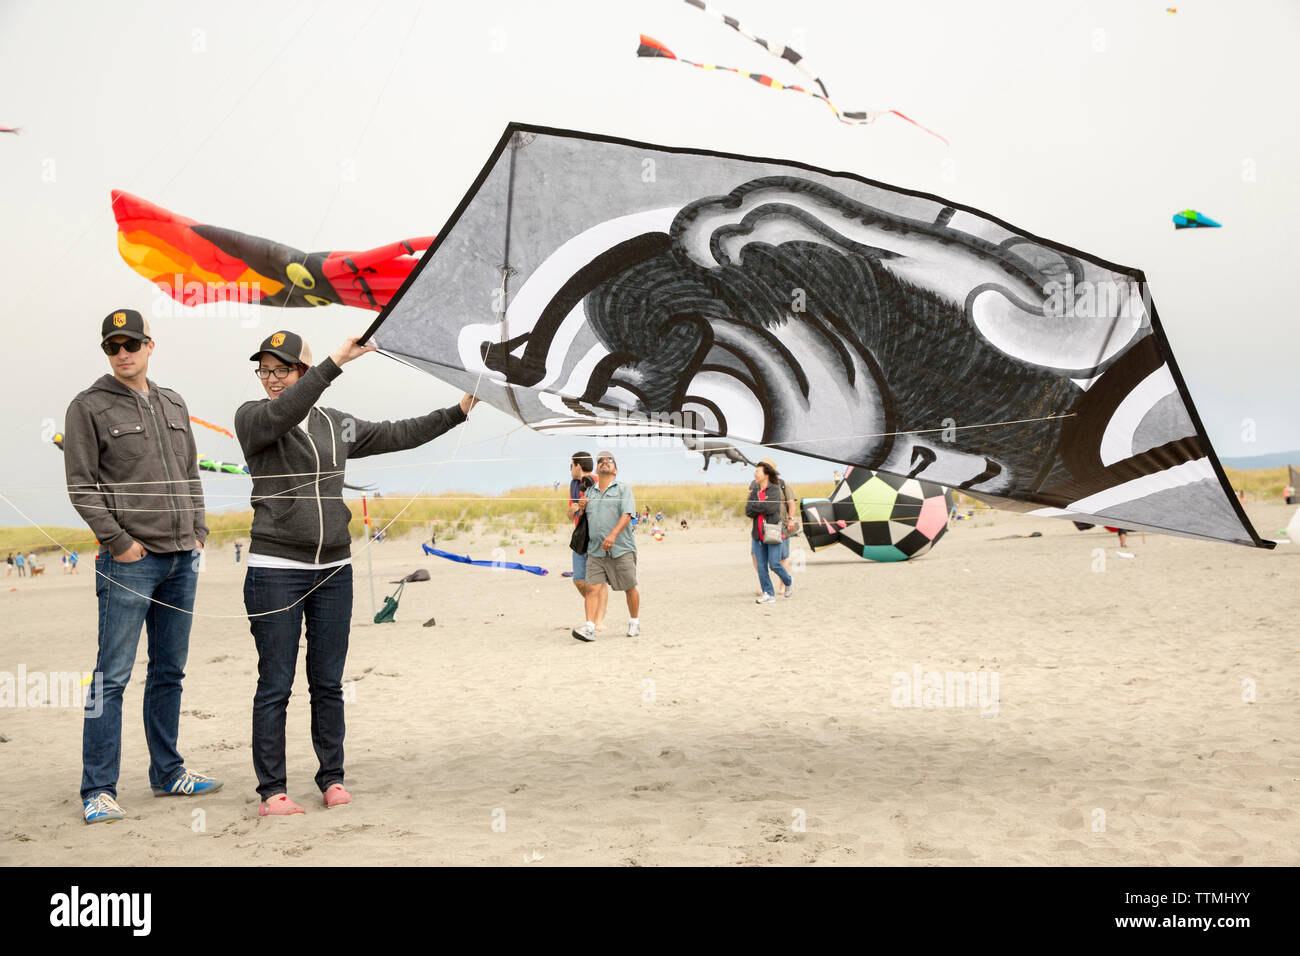 USA, Washington State, Long Beach Peninsula, International Kite Festival, couple launch a large black and white Japanese style kite - Stock Image